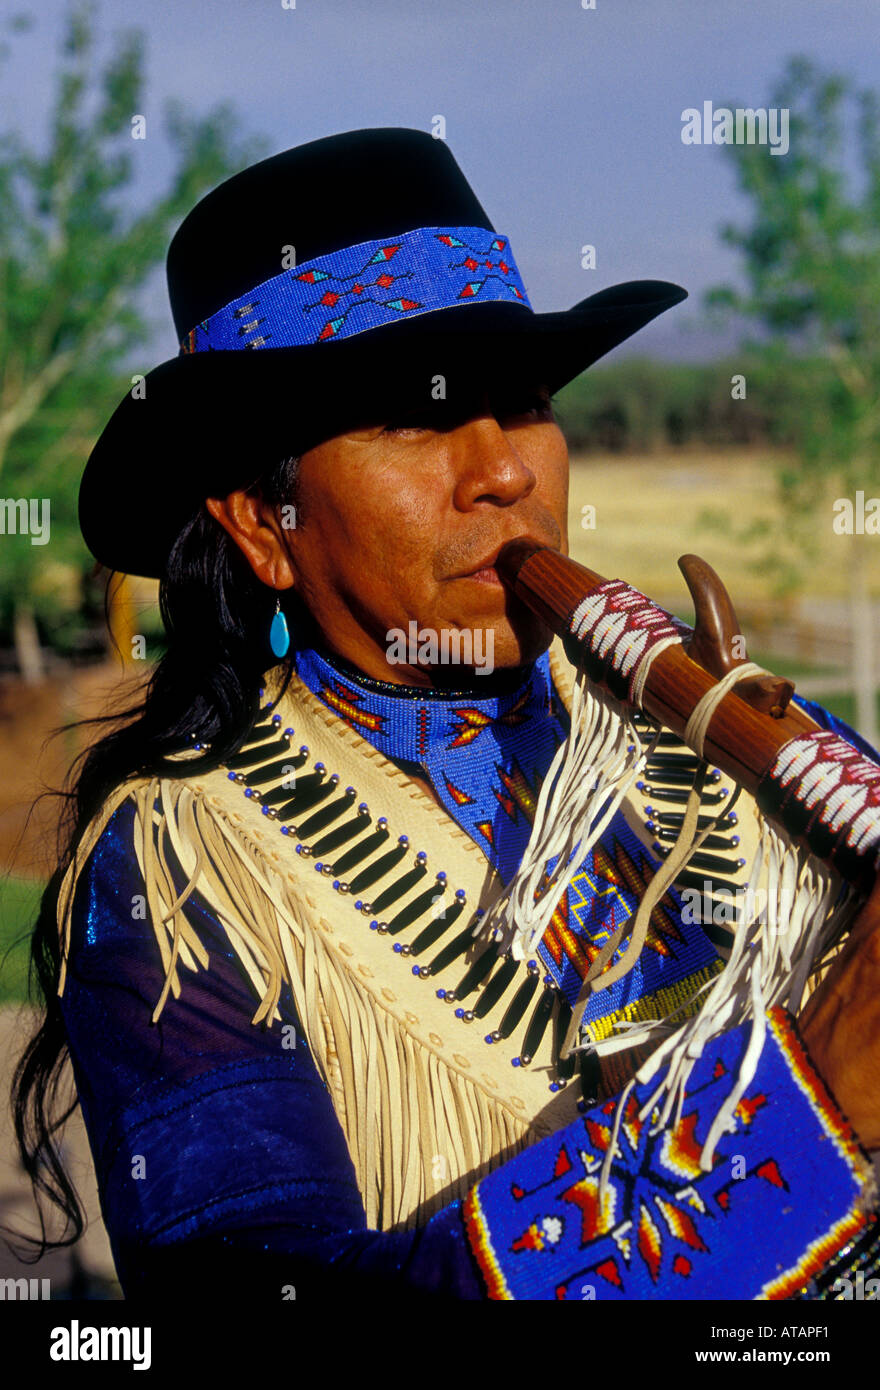 Allenroy Paquin, Native American Indian, Native American, artist, musician, playing flute, flute player, flutist, Stock Photo